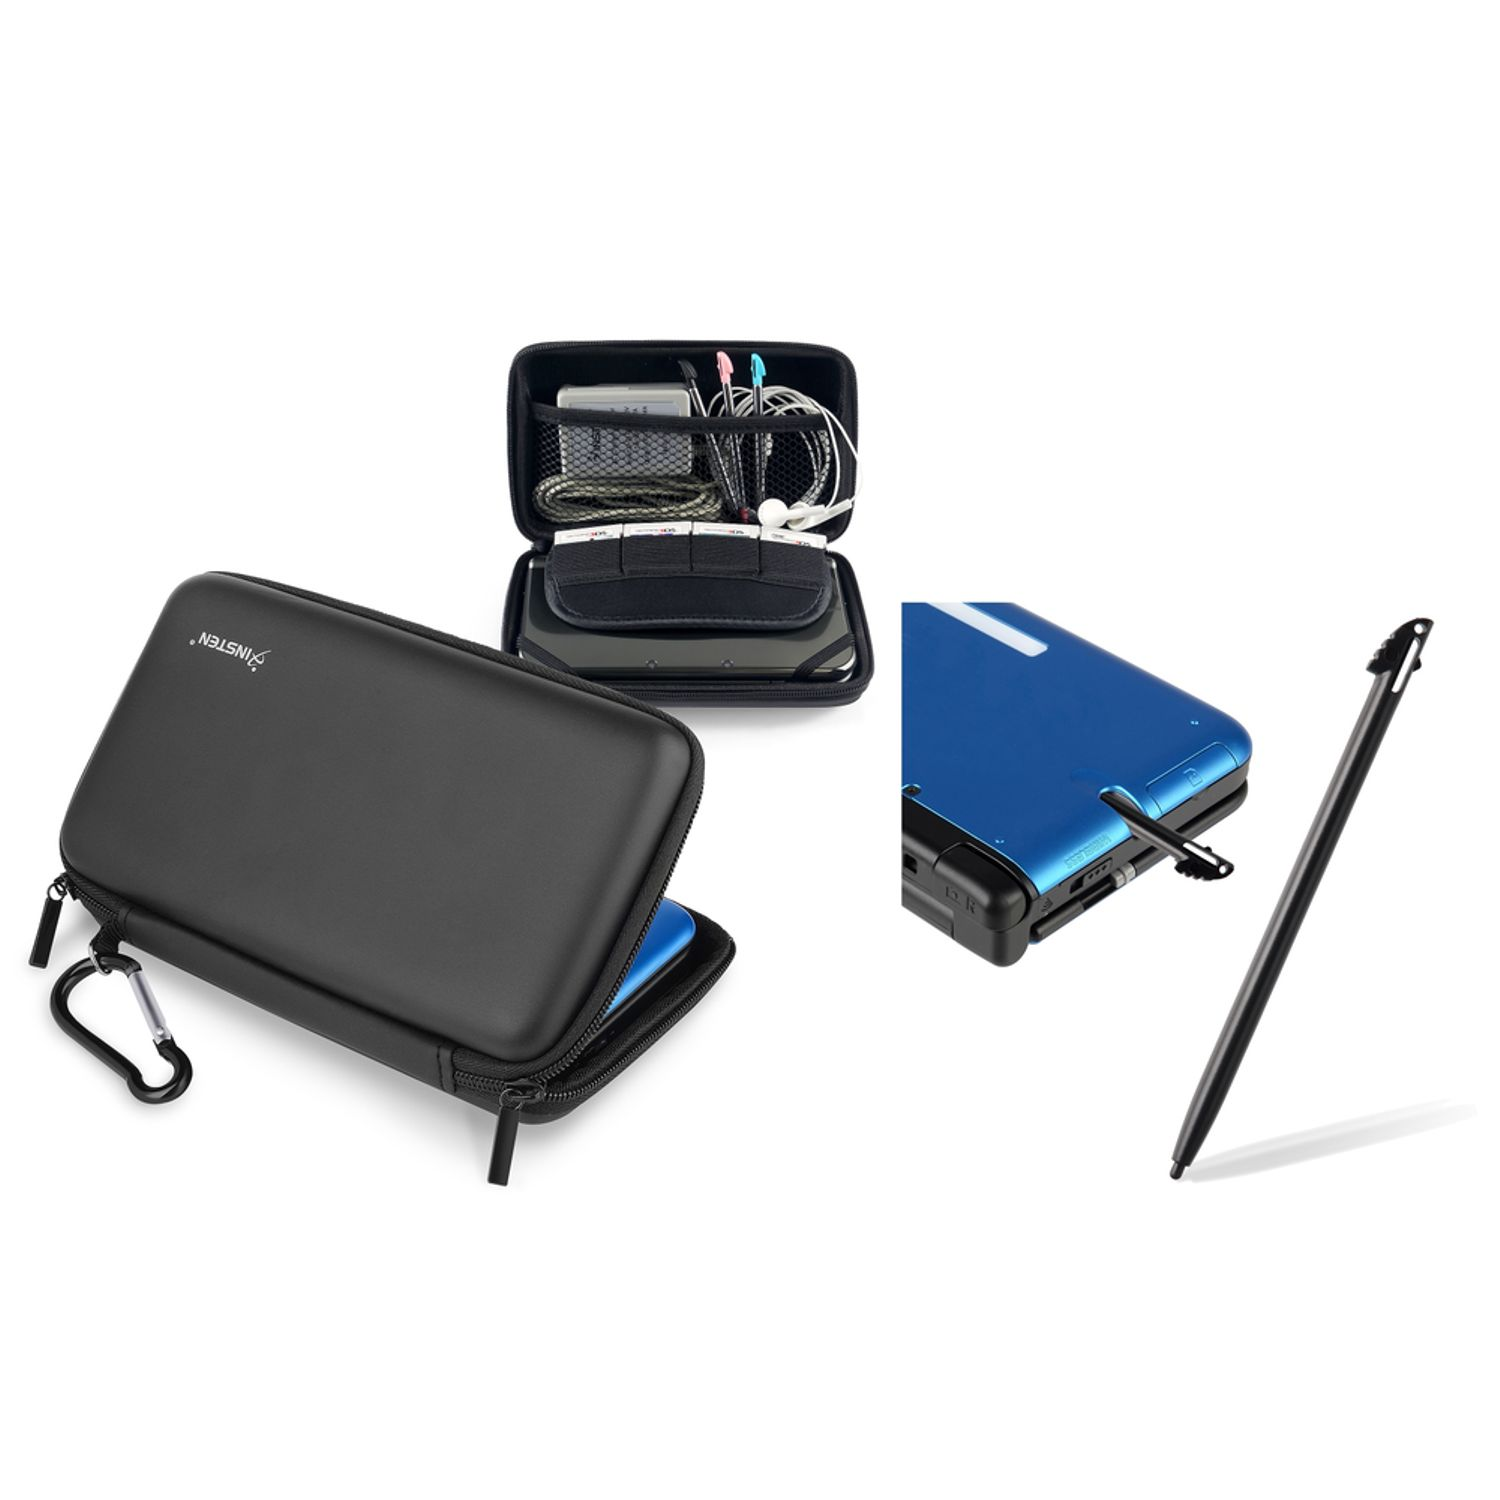 Nintendo 3DS XL Stylus Pen, Black + EVA Skin Carry Hard Case by Insten, Black